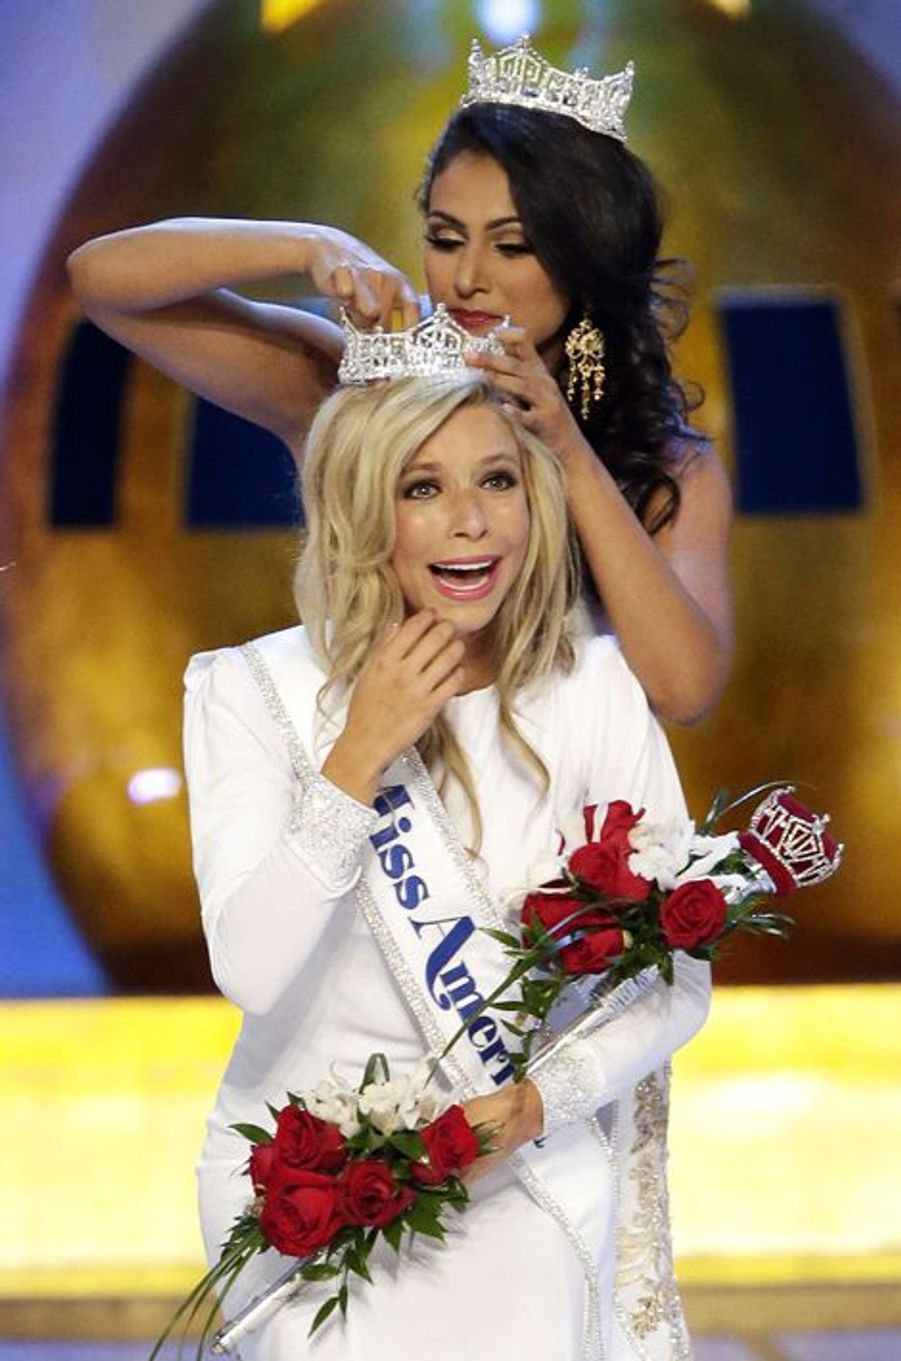 Kira Kazantsev, Miss New York, a été élue Miss America 2015 le 14 septembre 2014 à Atlantic City.